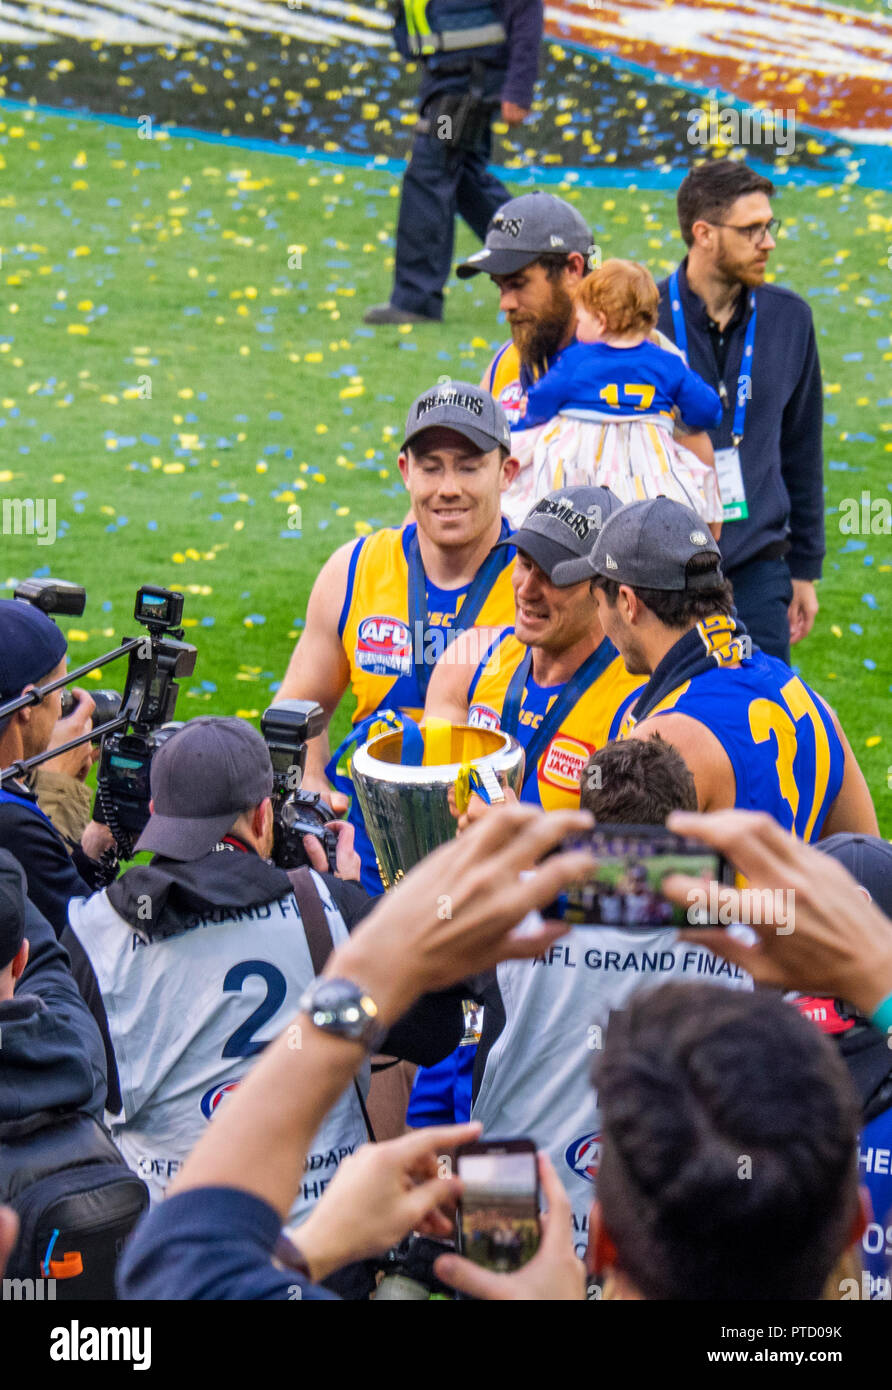 West Coast Eagles premiership players Jeremy McGovern and Josh Kennedy celebrating after 2018 AFL Grand Final at MCG Melbourne Victoria Australia. - Stock Image